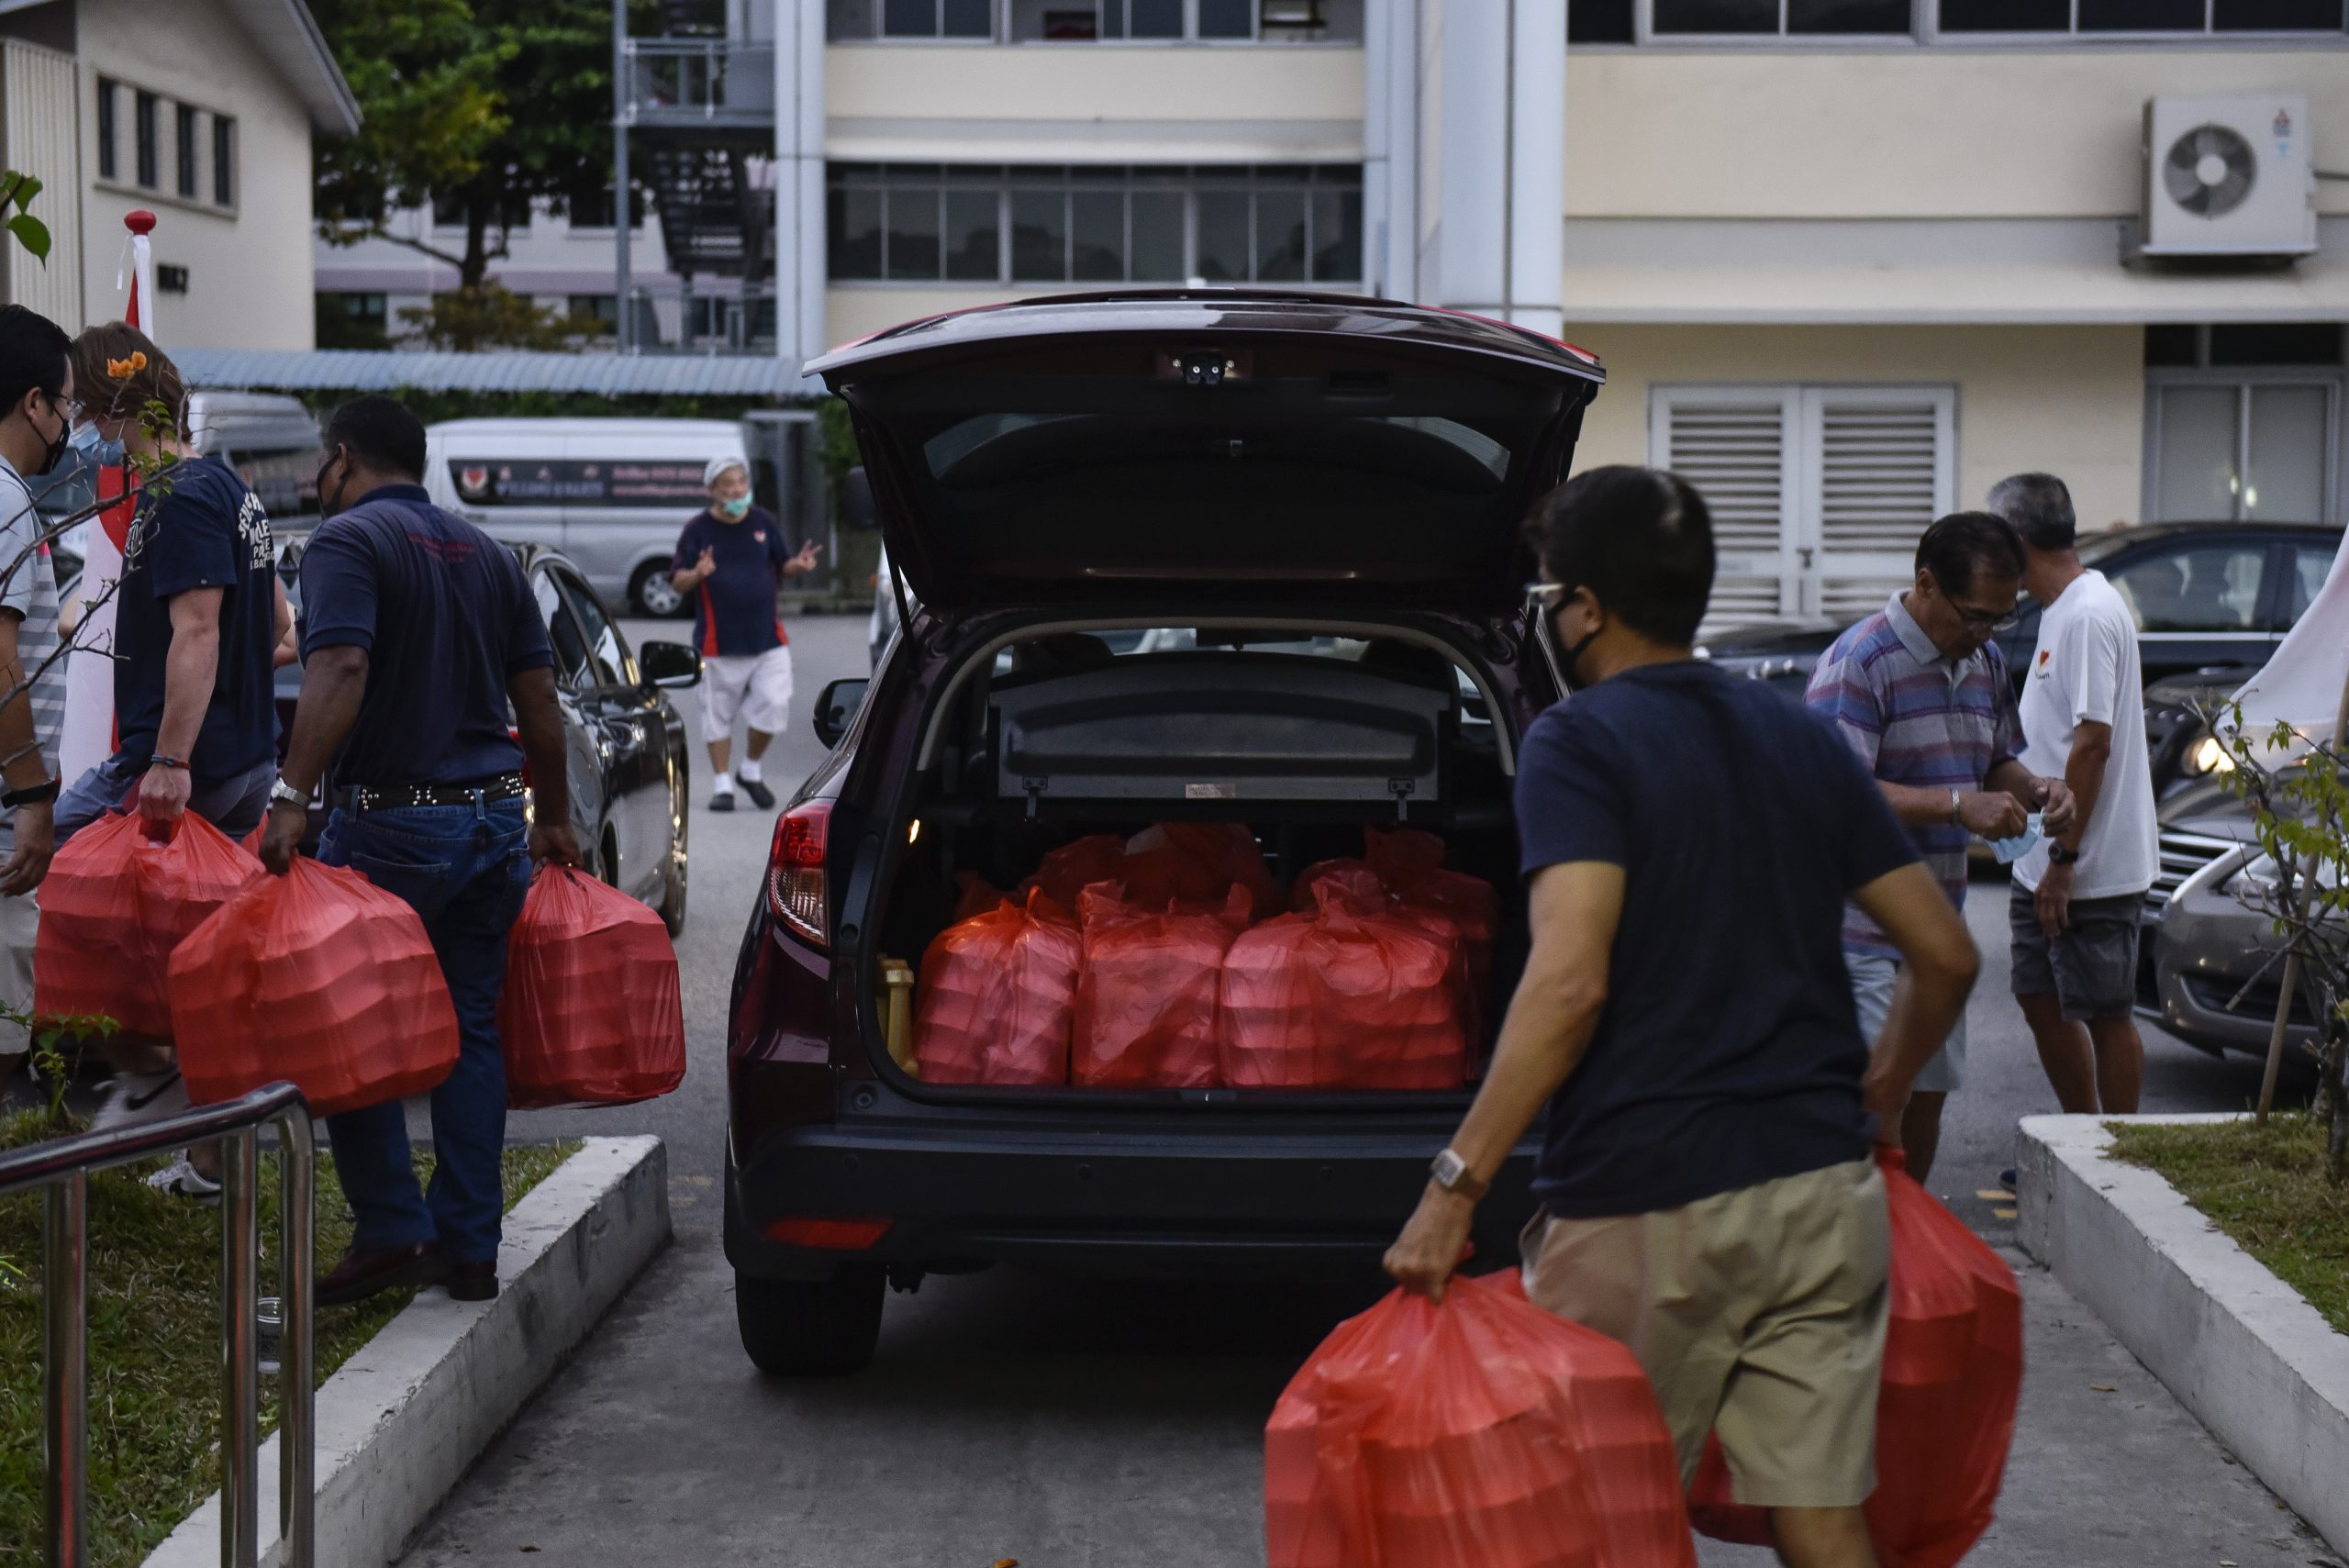 All packed meals are loaded into private cars, taxis, vans and lorries fill the driveway at collection time, bound for their respective distribution points. Mr Tay makes a food delivery in the morning too, after supervising work in the kitchen.